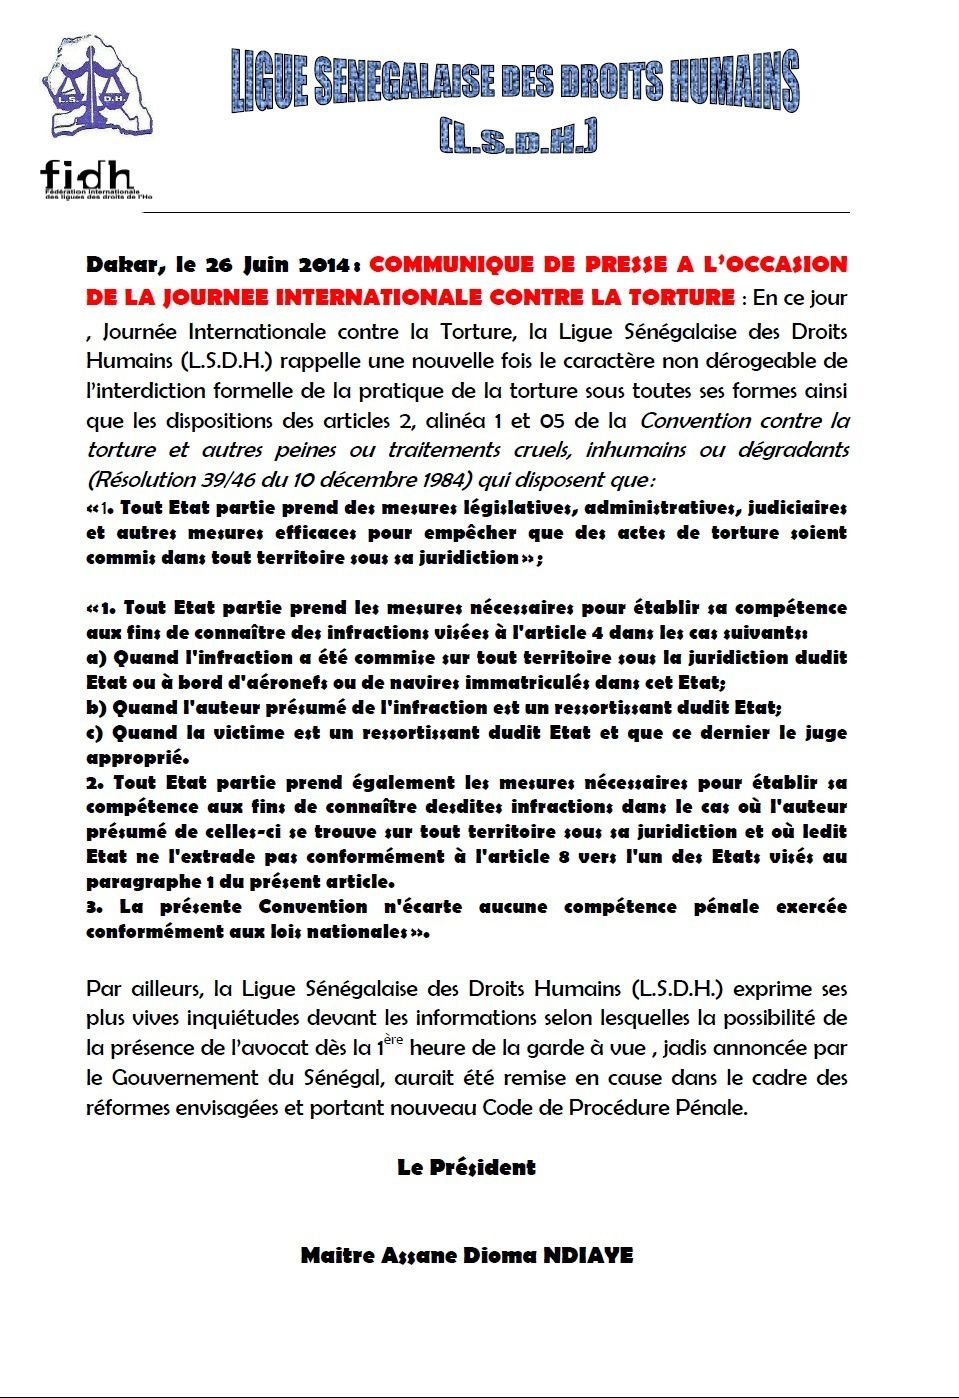 COMMUNIQUE DE PRESSE A LA LSDH SUR  LA JOURNEE INTERNATIONALE CONTRE LA TORTURE